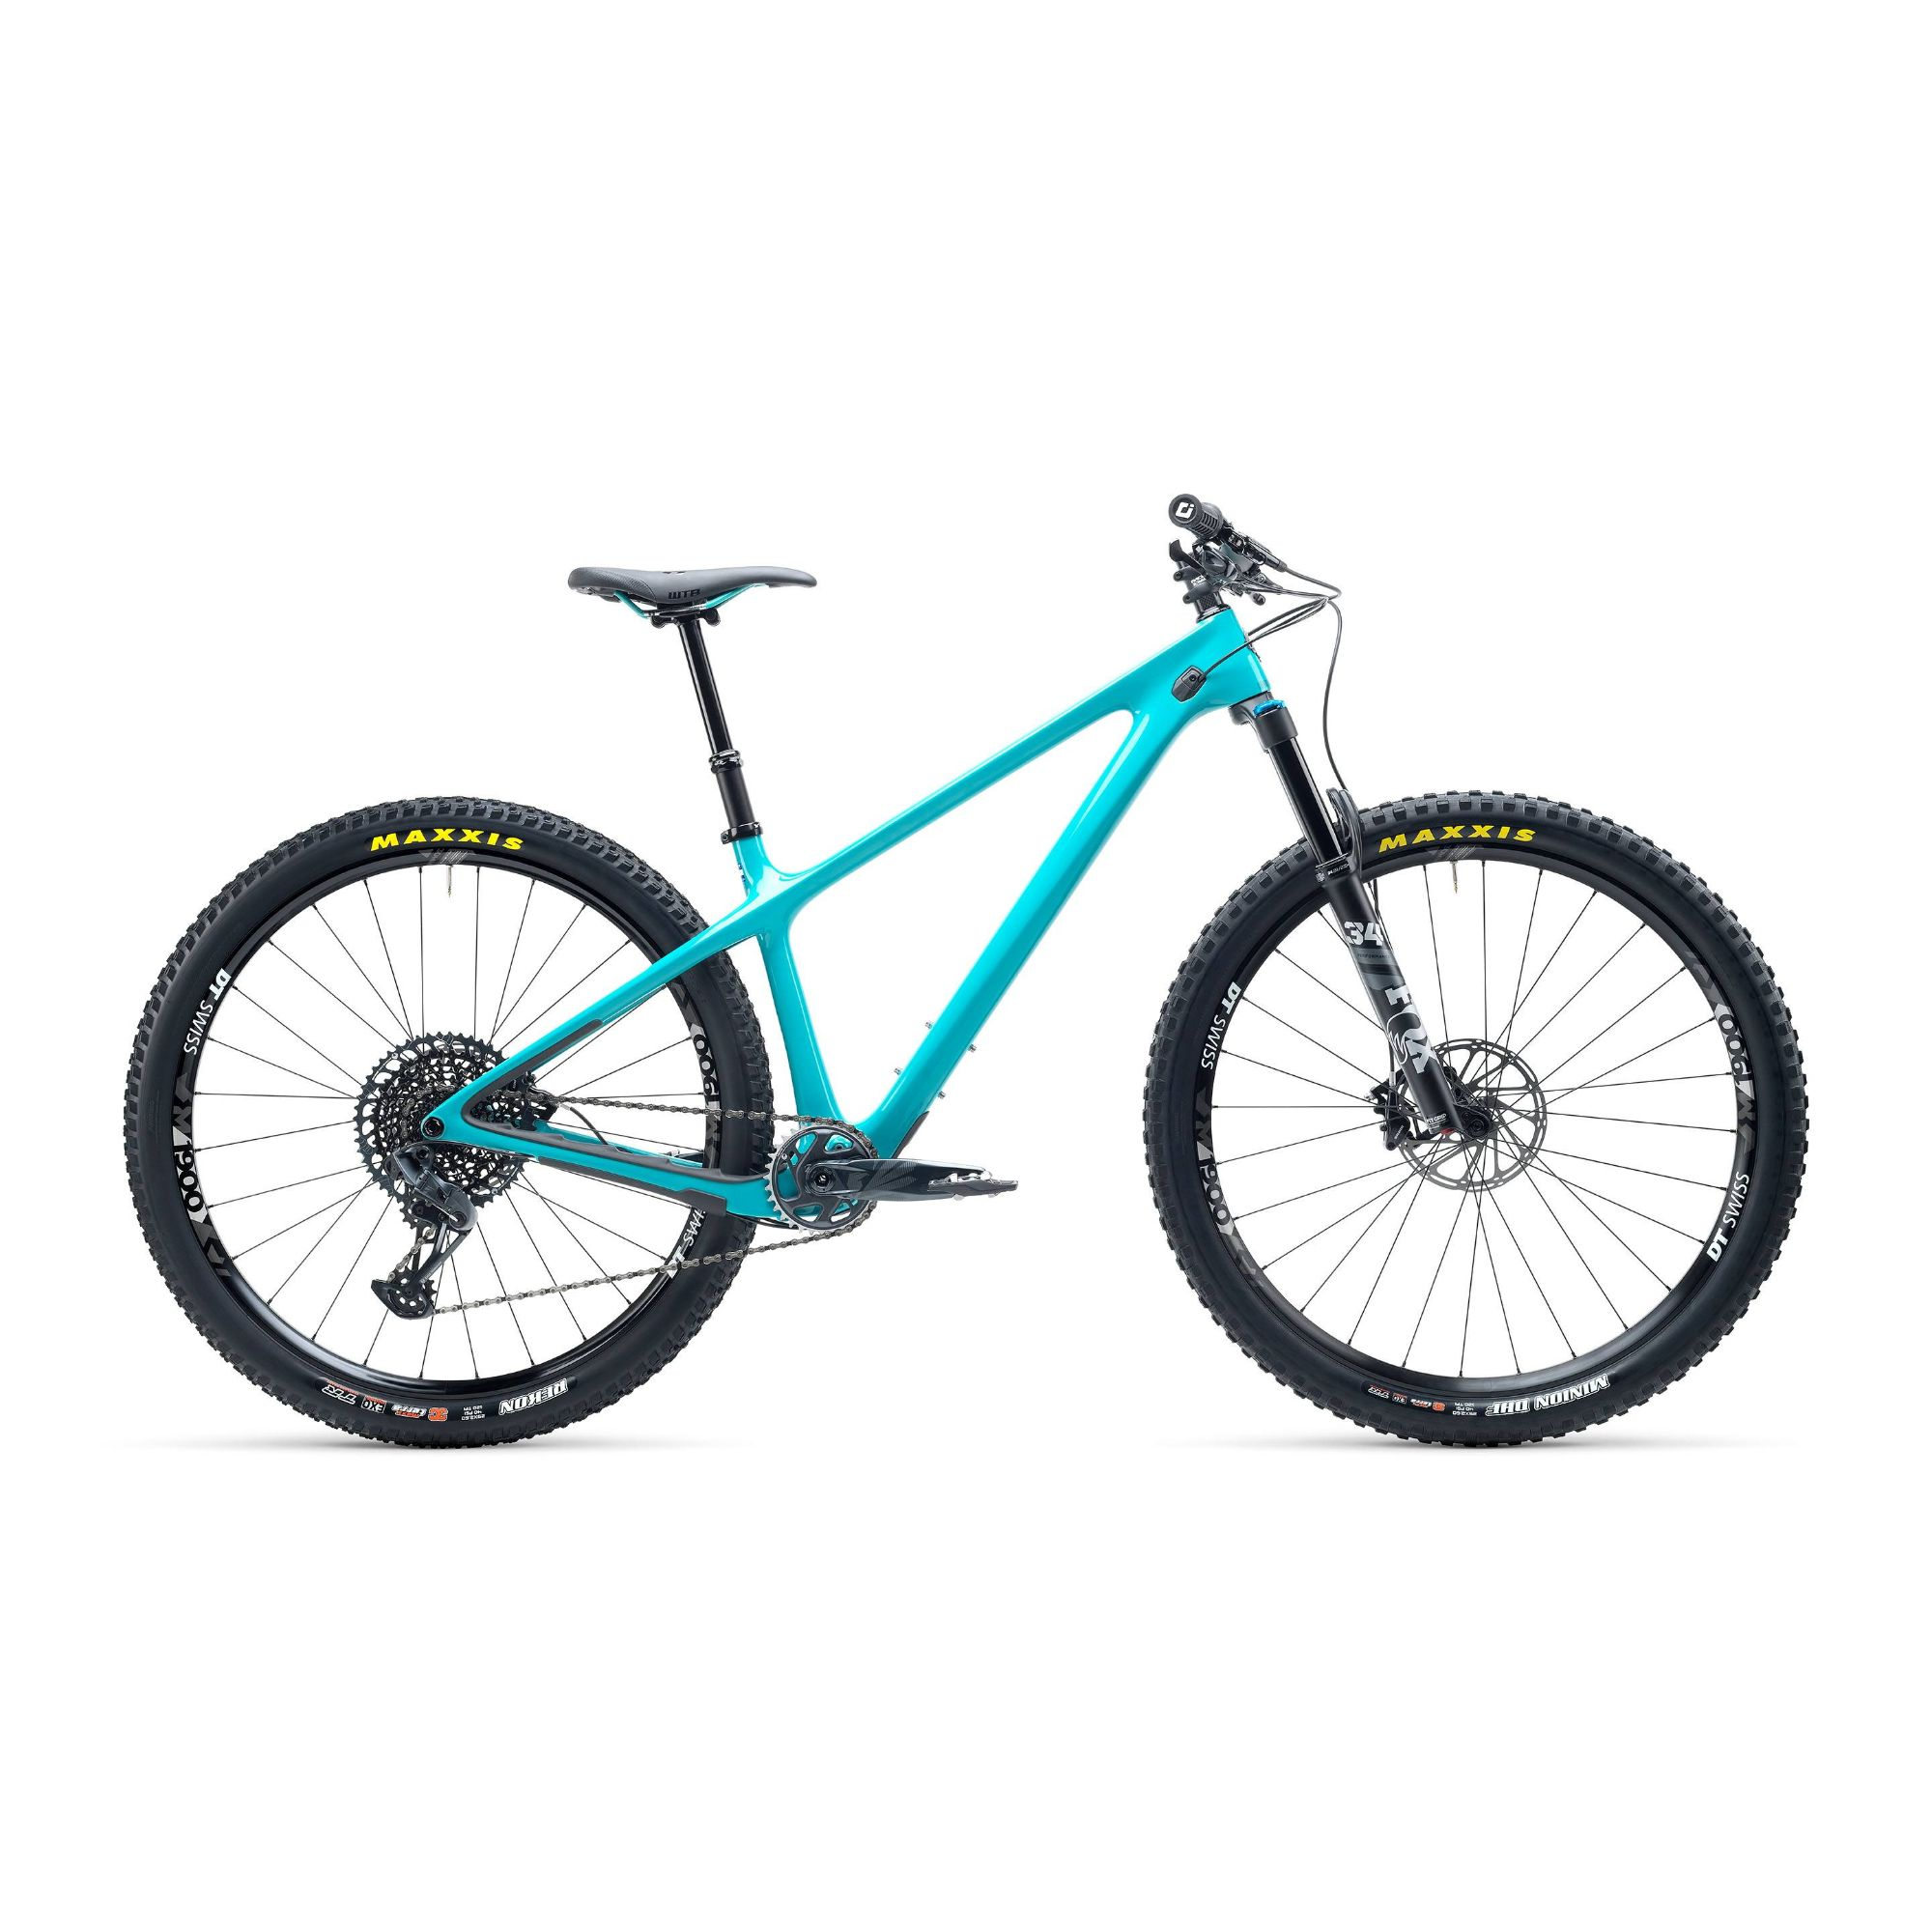 Yeti ARC C-Series C2 29er GX Eagle Mountain Bike 2021 Turquoise